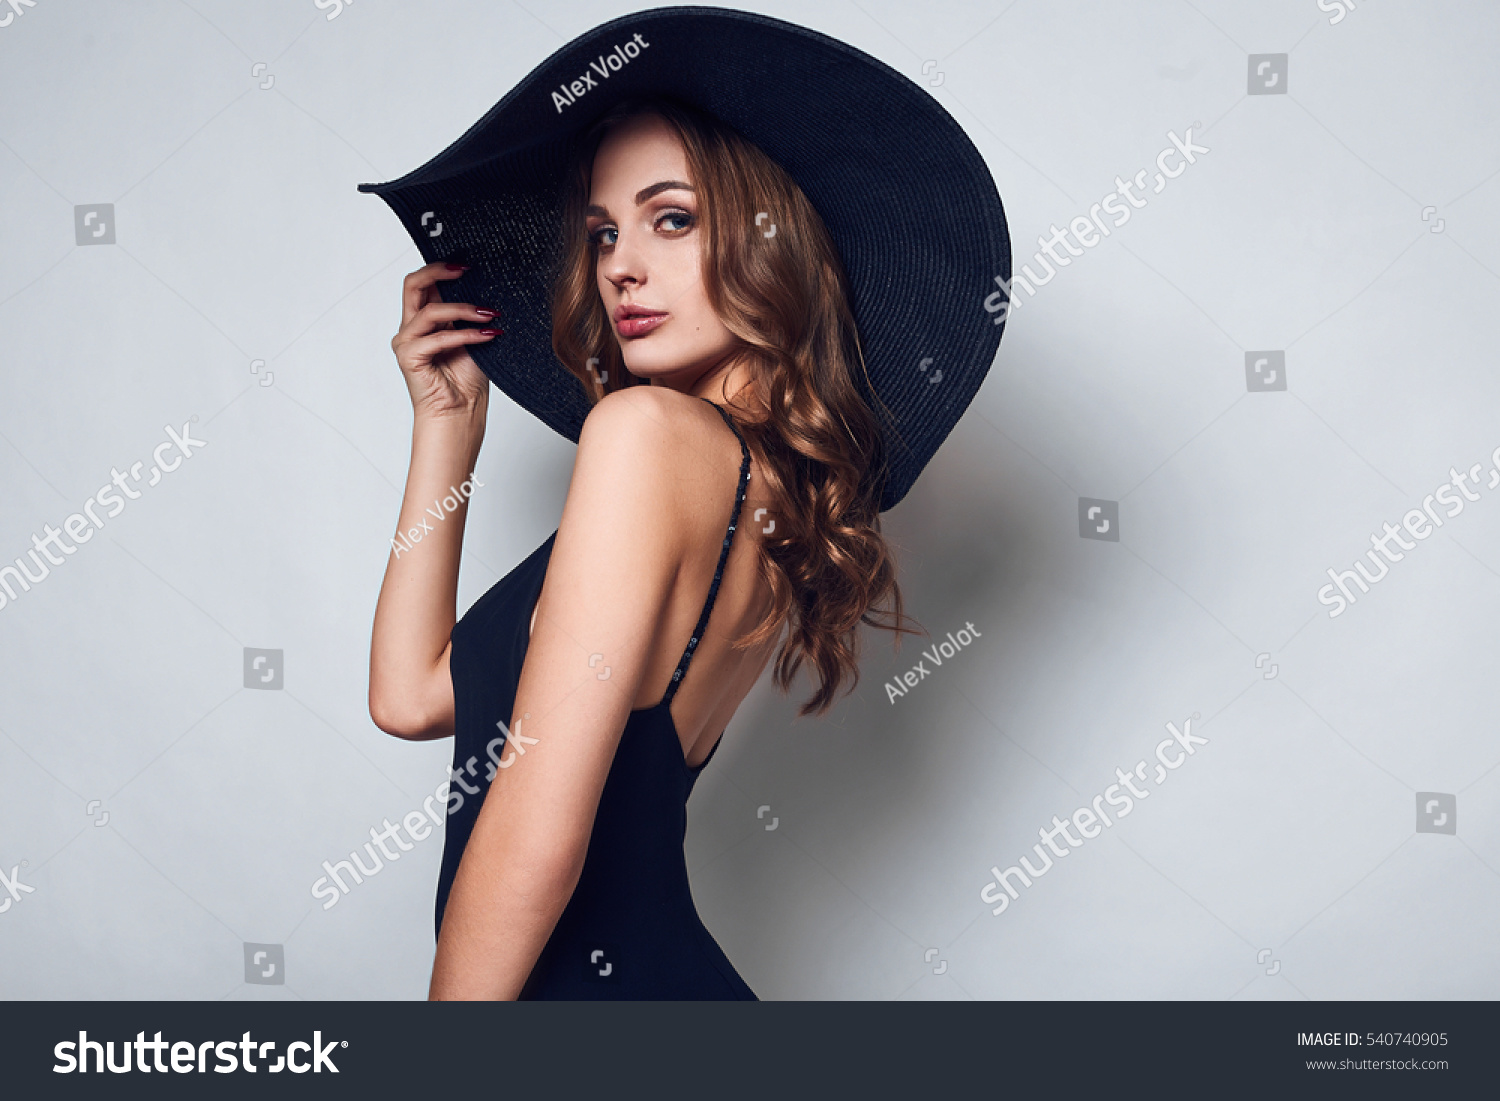 Black dress woman - Portrait Of Elegant Beautiful Woman In A Black Dress And Wide Hat Isolated On White Background